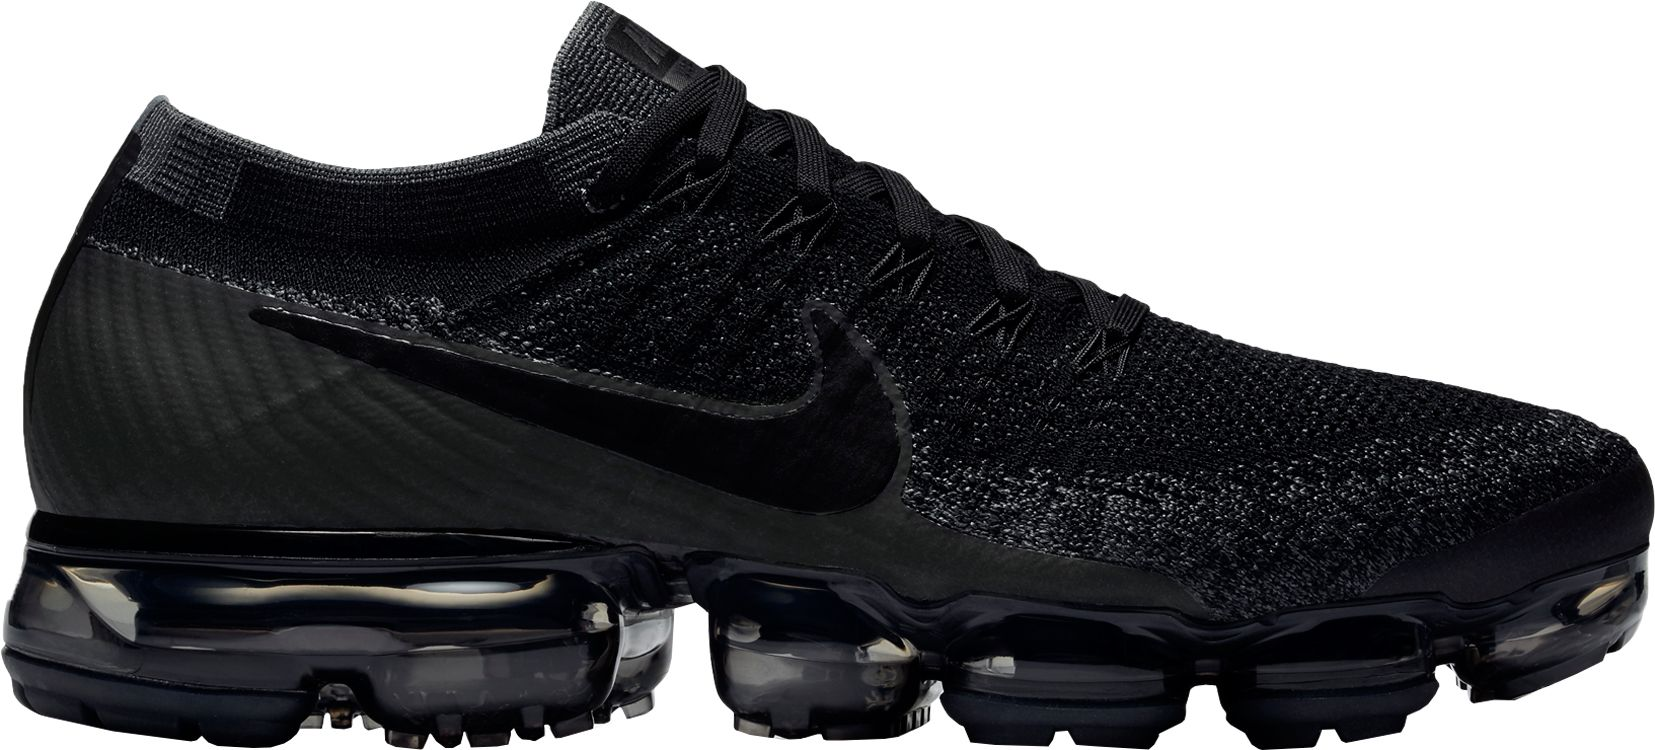 Nike Air VaporMax Flyknit Women's Running Shoe. Nike NZ